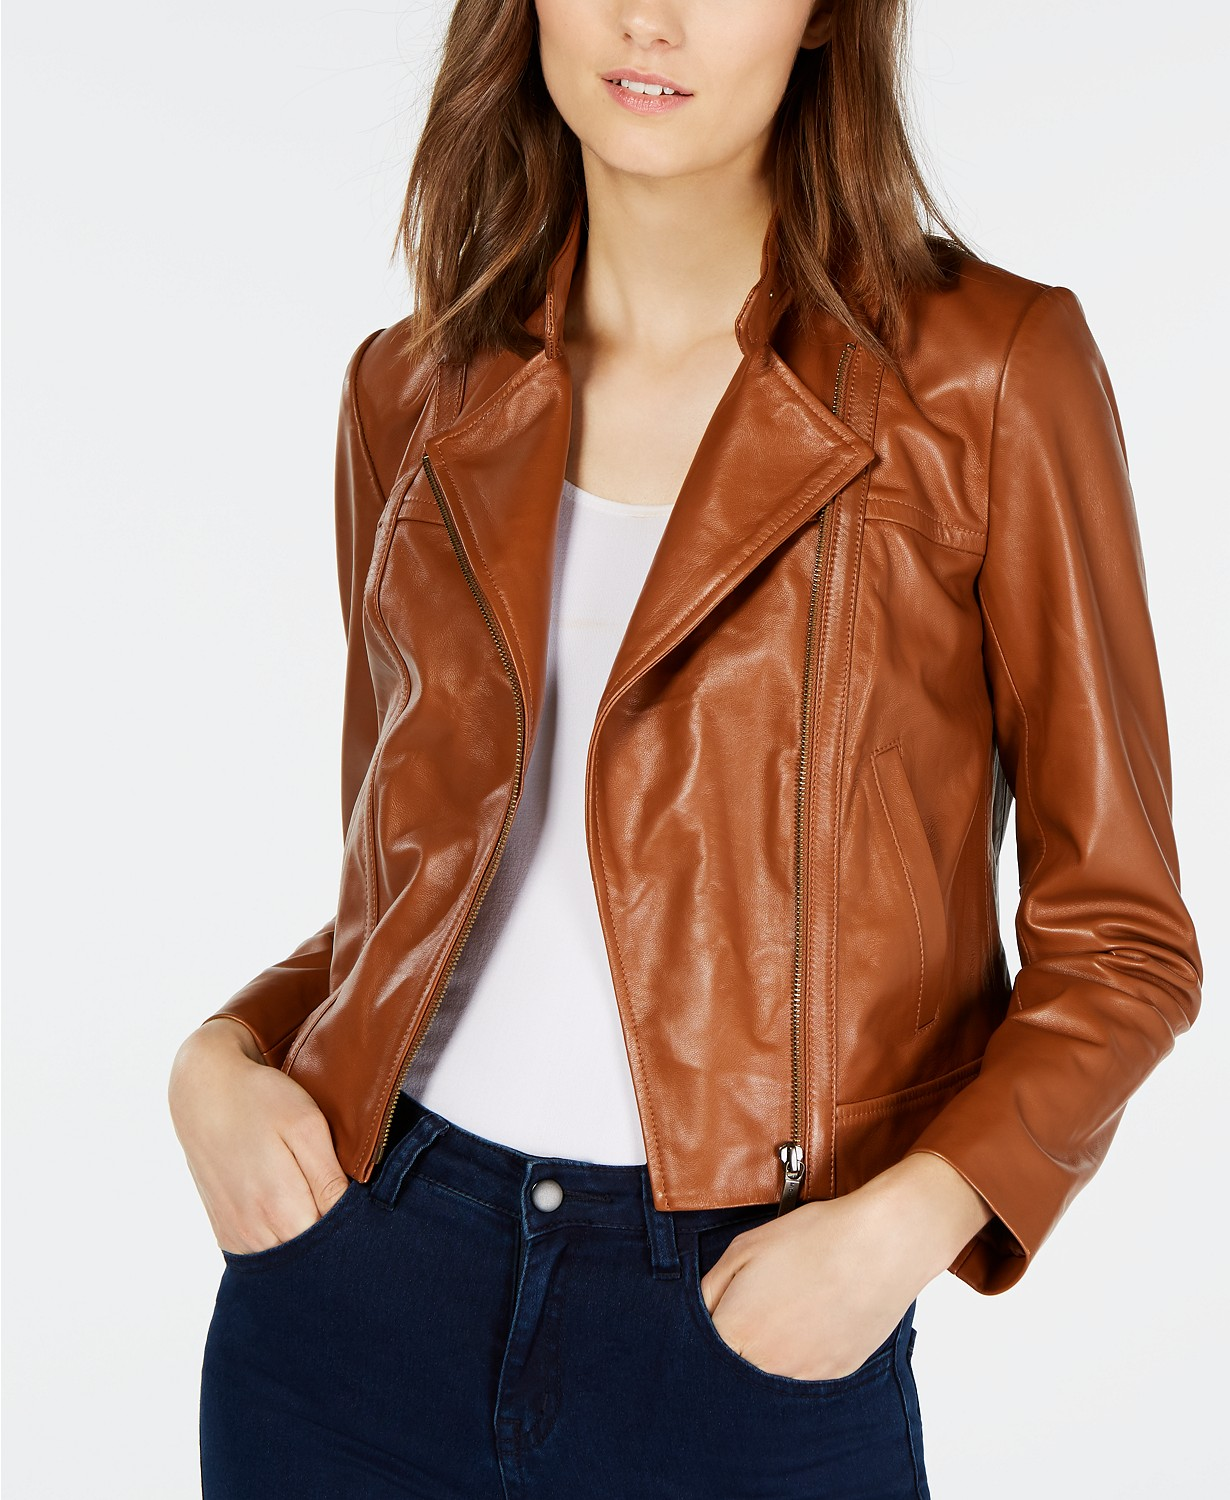 https://www.macys.com/shop/product/michael-michael-kors-leather-moto-jacket-regular-petite-sizes?ID=4943862&CategoryID=120&isDlp=true&swatchColor=Luggage#fn=sp%3D1%26spc%3D2268%26ruleId%3D136%7CBOOST%20ATTRIBUTE%7CBOOST%20SAVED%20SET%26kws%3Dmichael%20kors%26searchPass%3DexactMultiMatch%26slotId%3D18